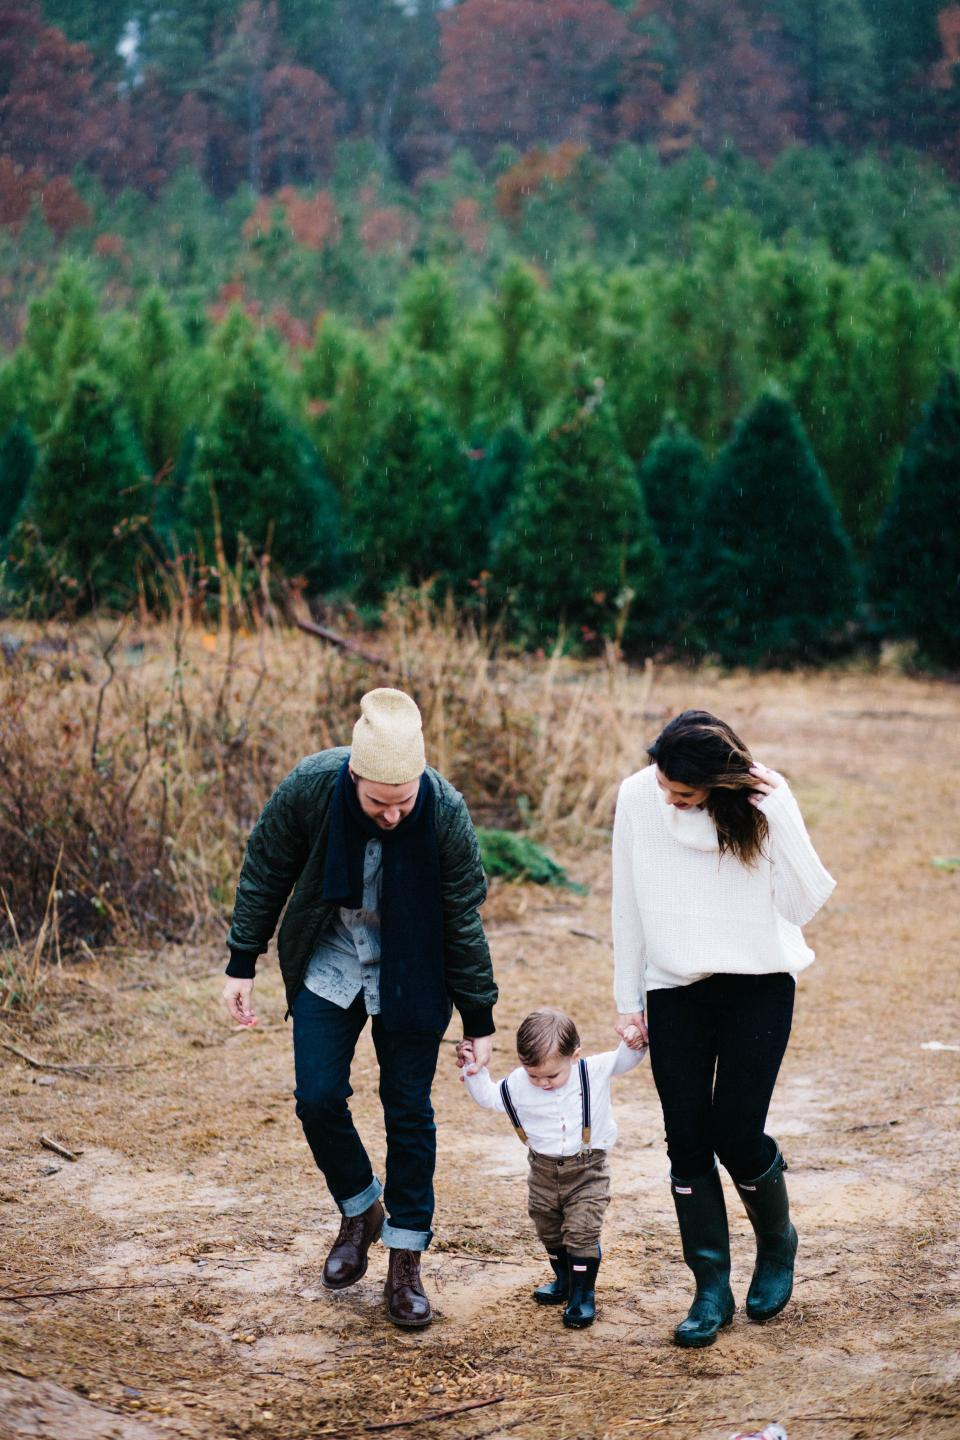 people, family, mother, father, son, kid, child, baby, woman, girl, man, husband, wife, travel, walking, hiking, outdoor, nature, landscape, trees, plant, rain